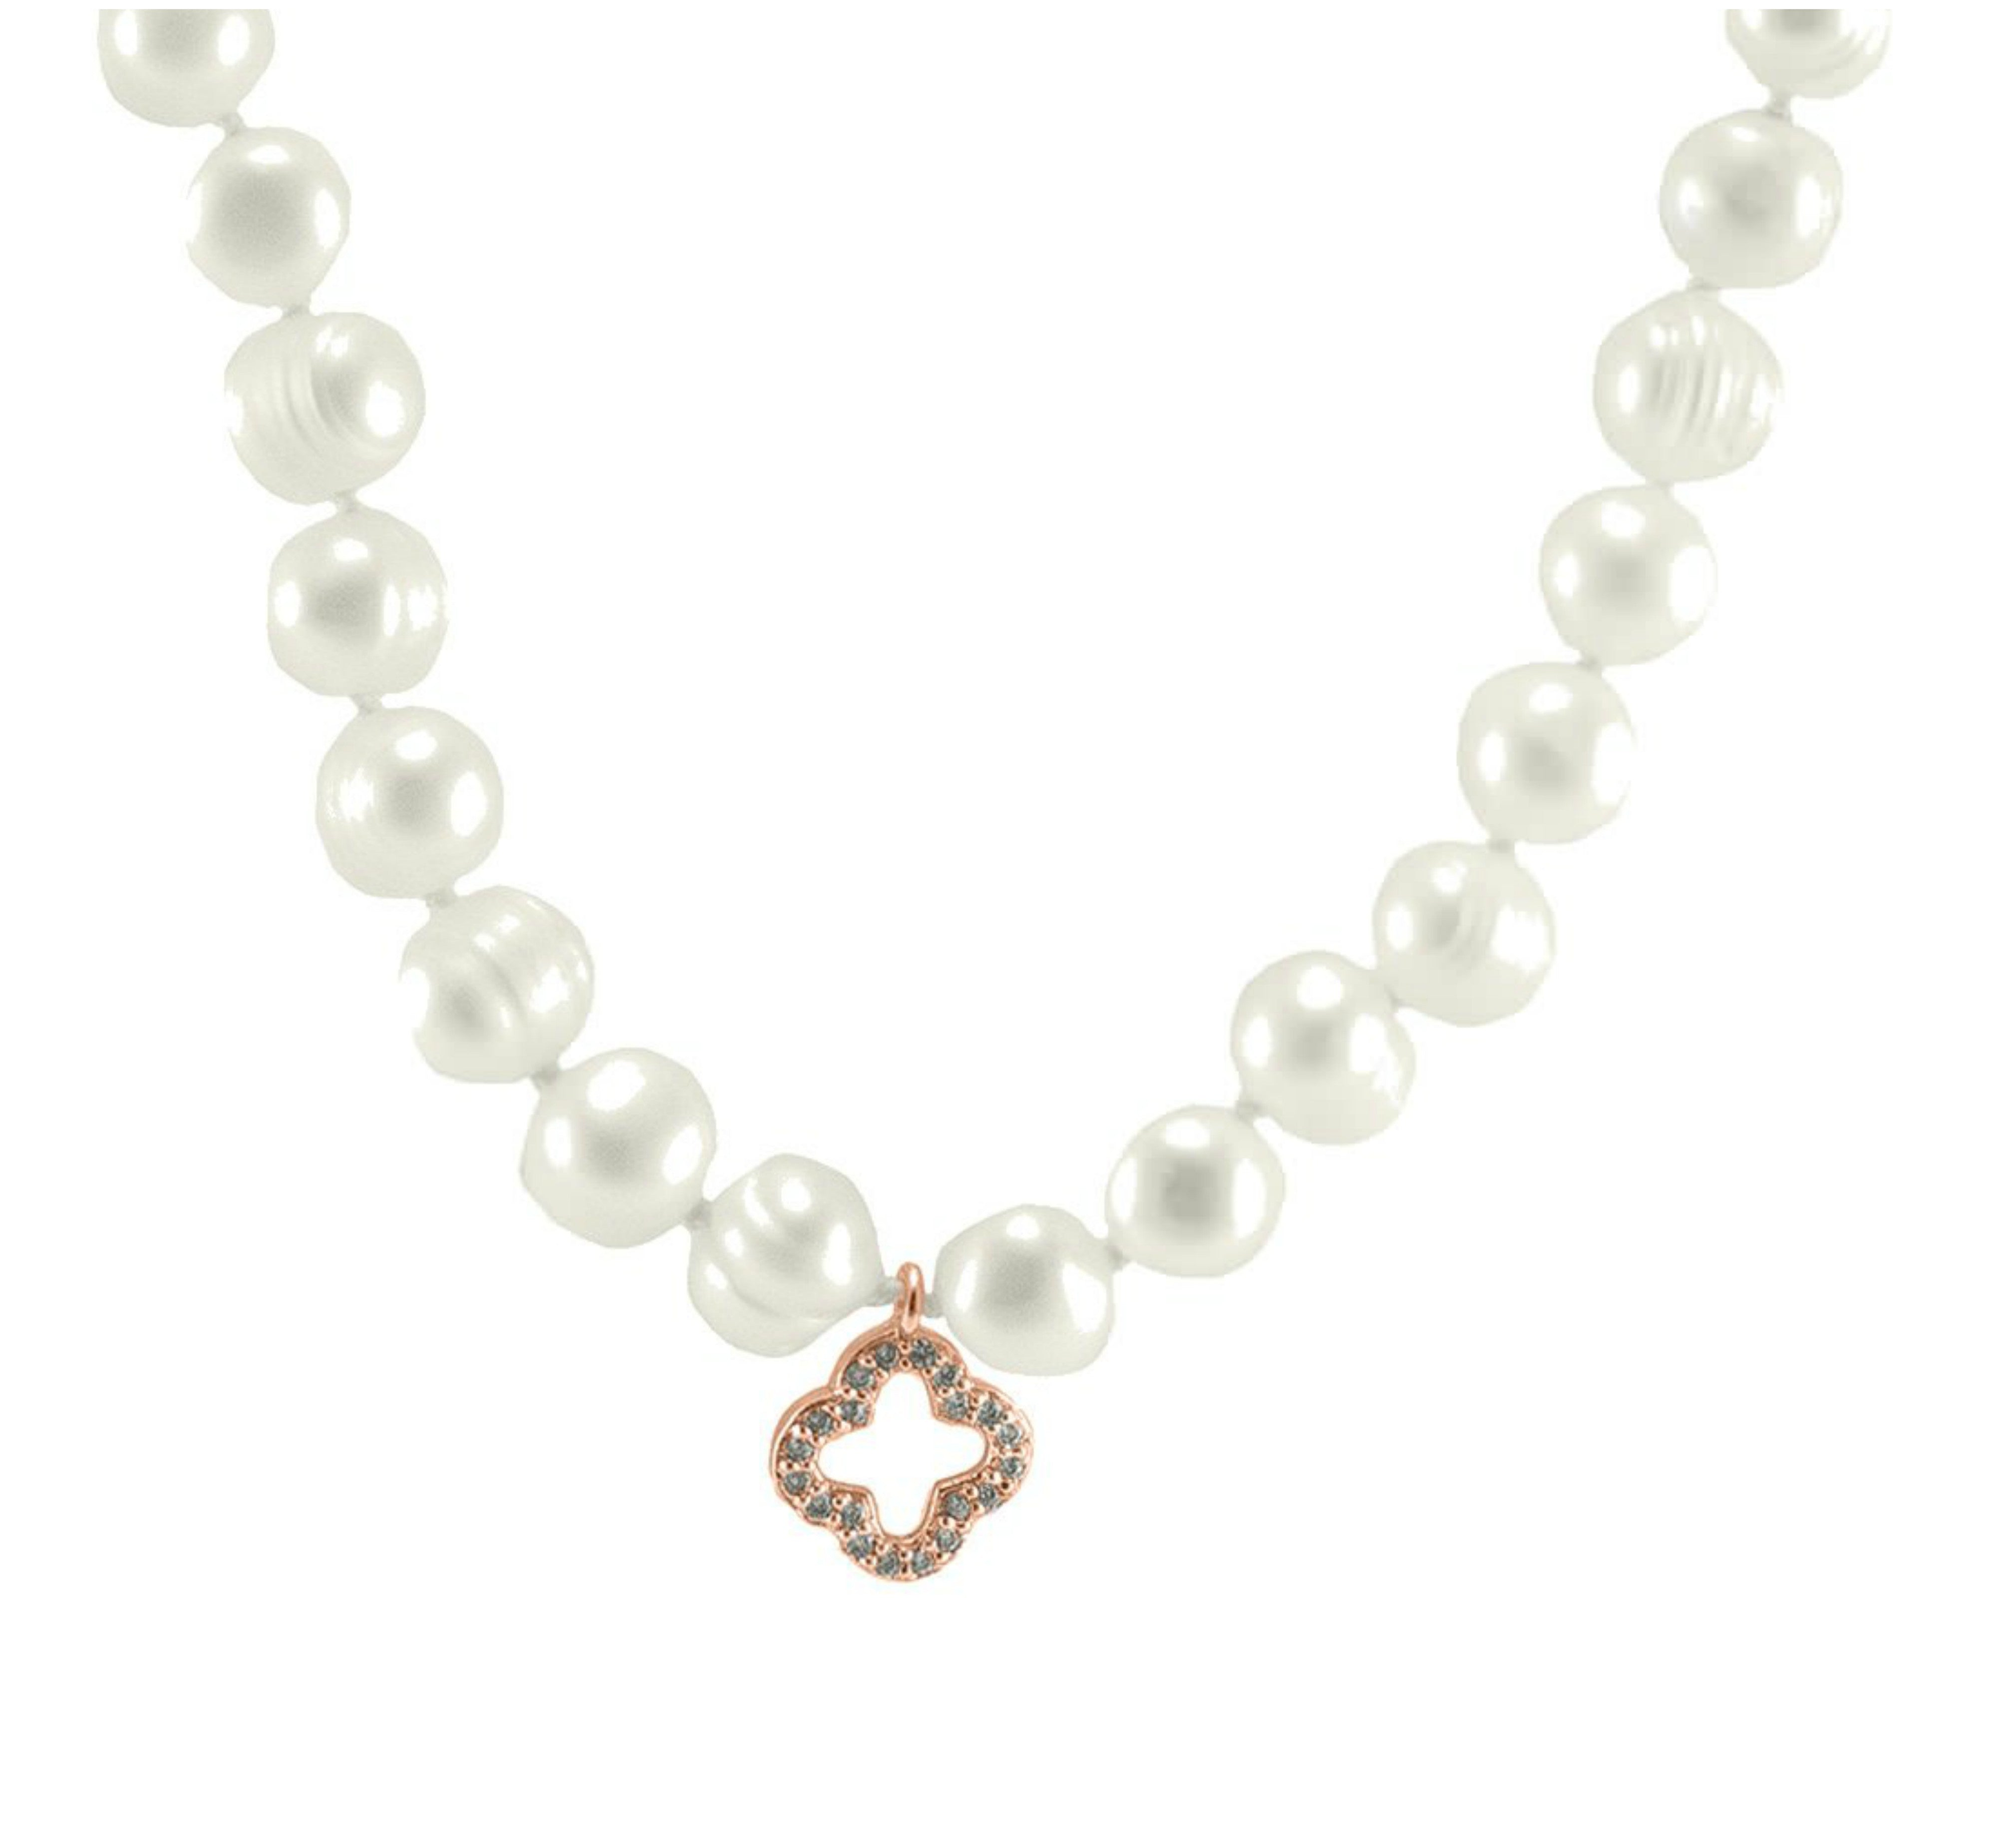 FreshWater Cultured Pearls Necklace Sweater Long Mother Shell Clover Flower TZ1